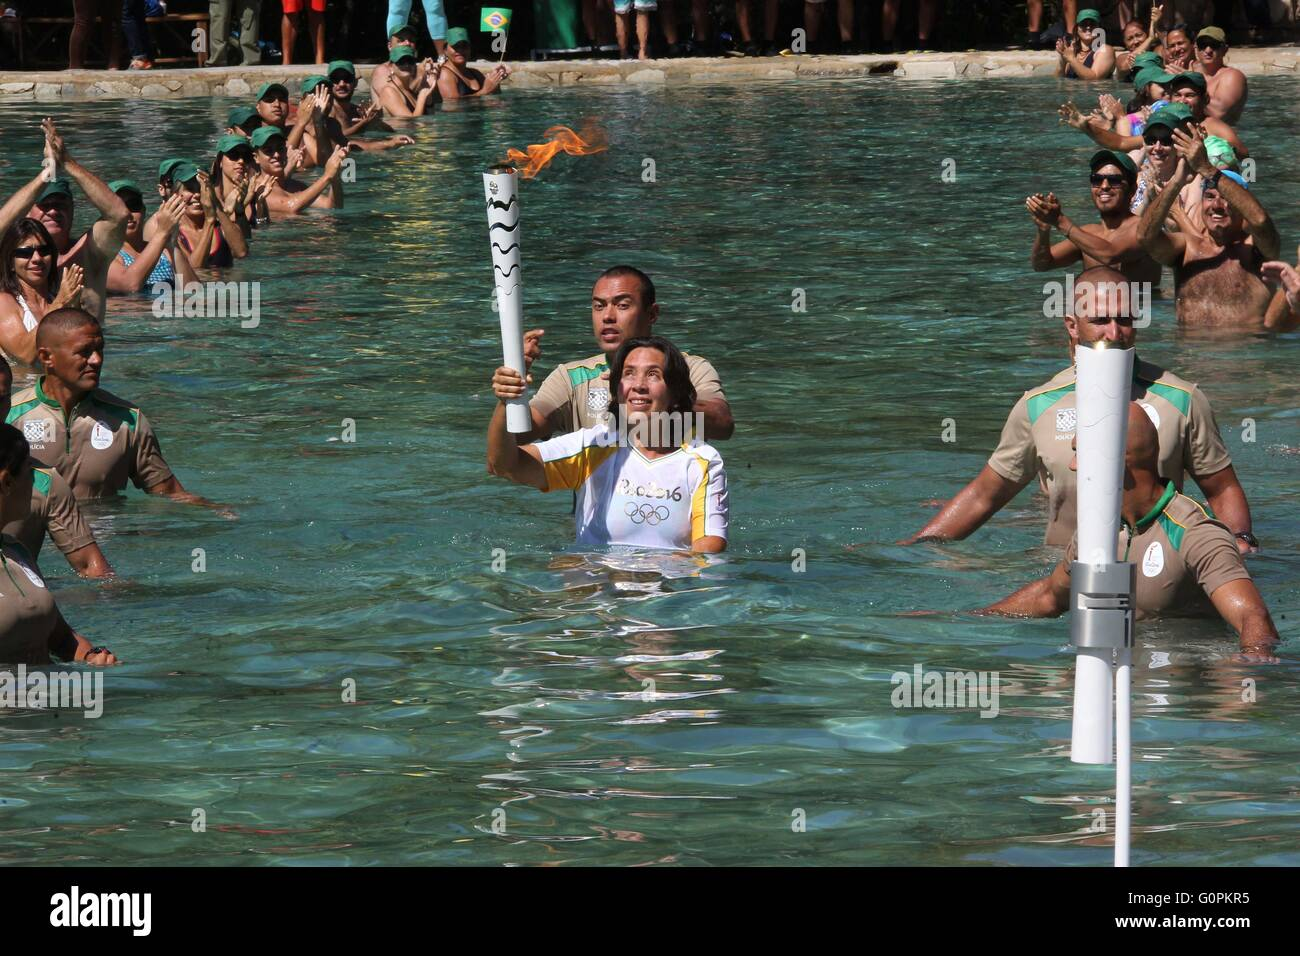 Brazilian torch runner, Flavia Canta, a public servant carries the torch across a swimming pool at the Brasilia - Stock Image